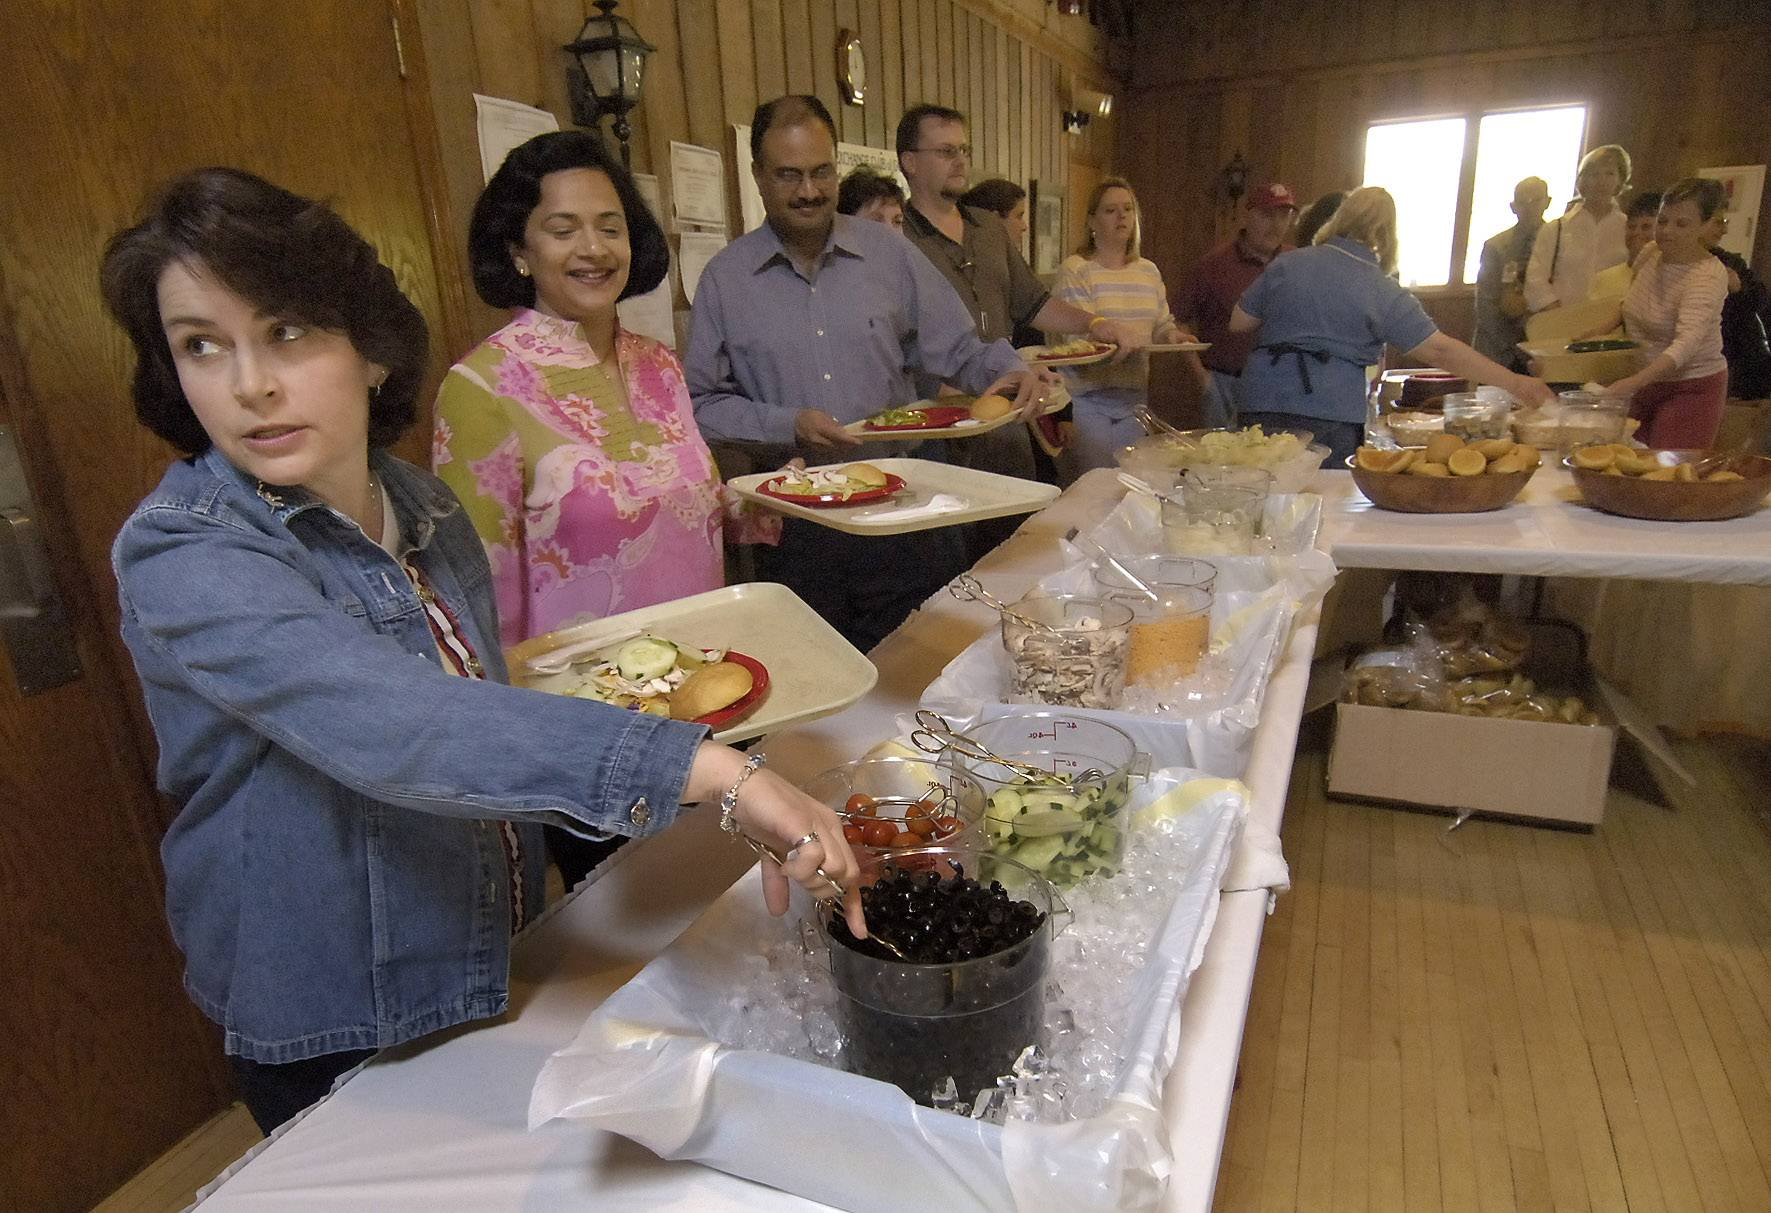 Exchange Club of Gurnee's Salad in the Park fundraiser returns for its 26th year from 11 a.m. to 2 p.m. Tuesday, May 13, at Gurnee Park District's Viking Park Dance Hall.